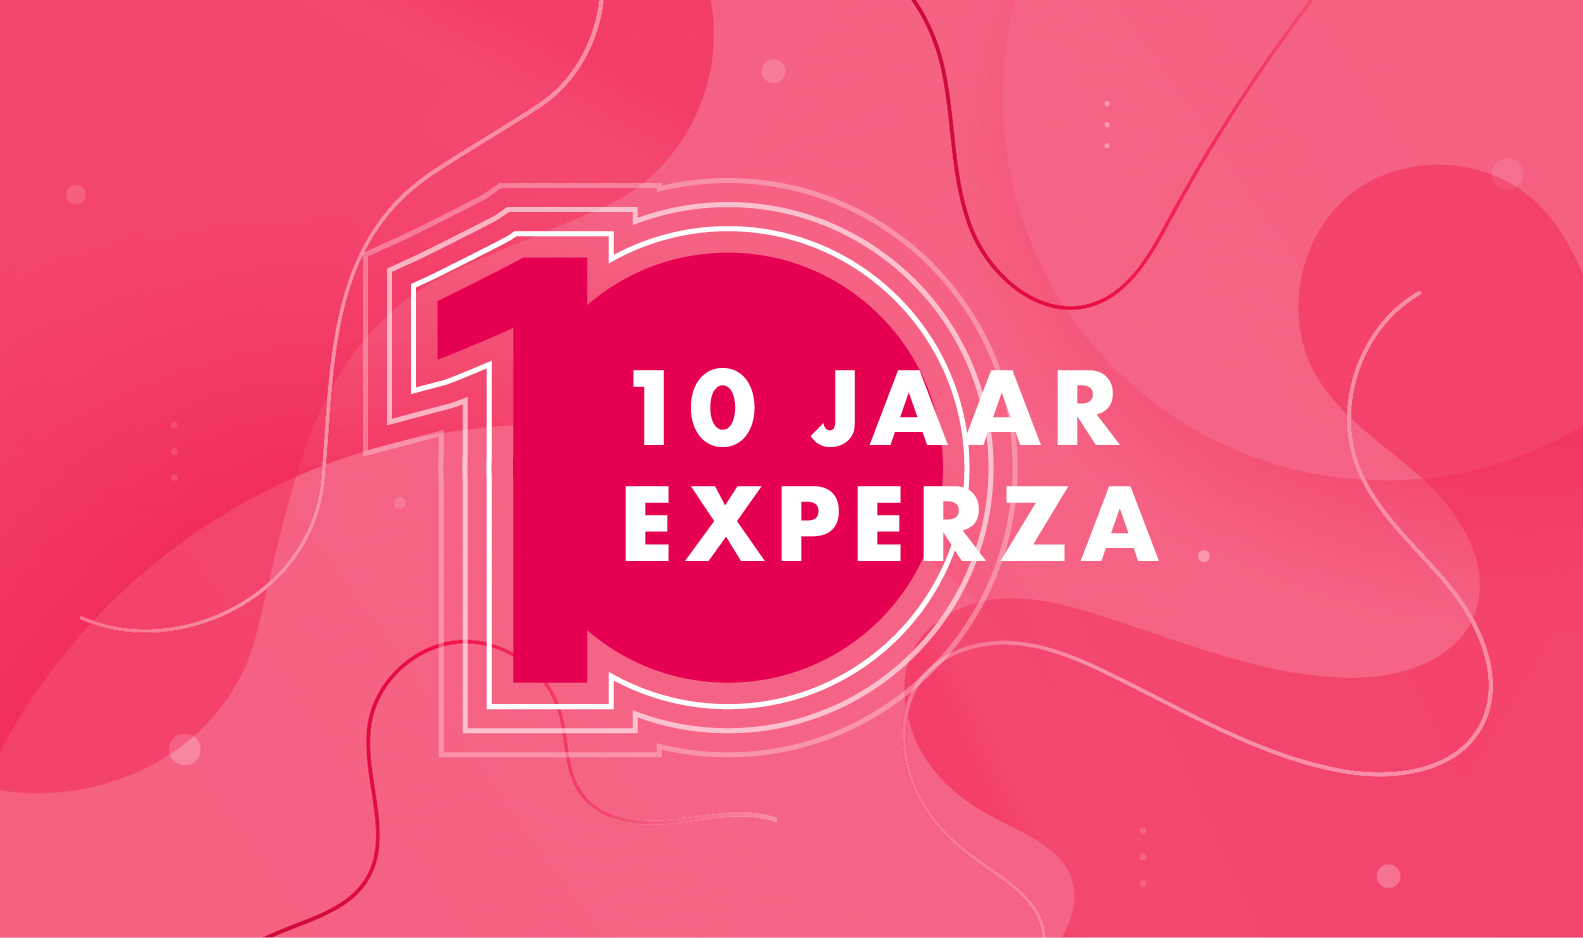 Experza, experts in uitzendwerk